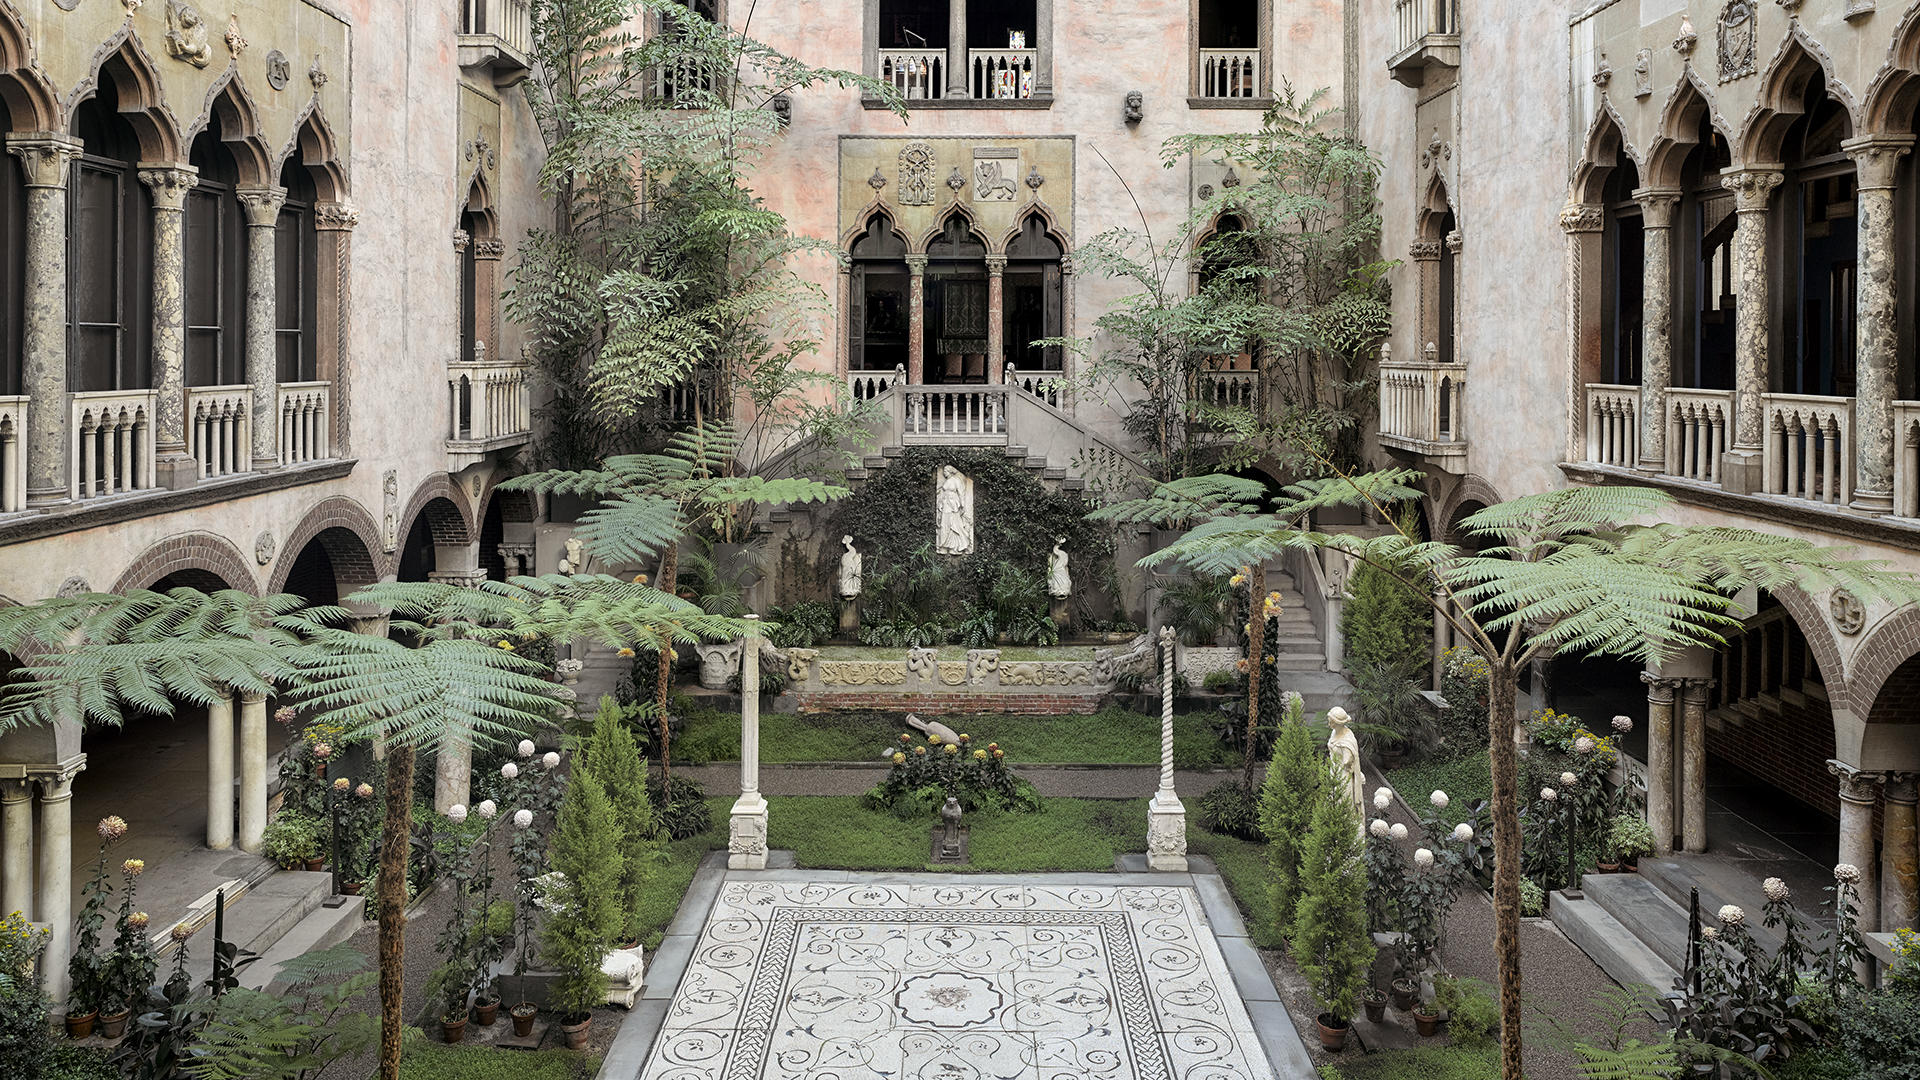 Courtyard of the Isabella Stewart Gardner Museum